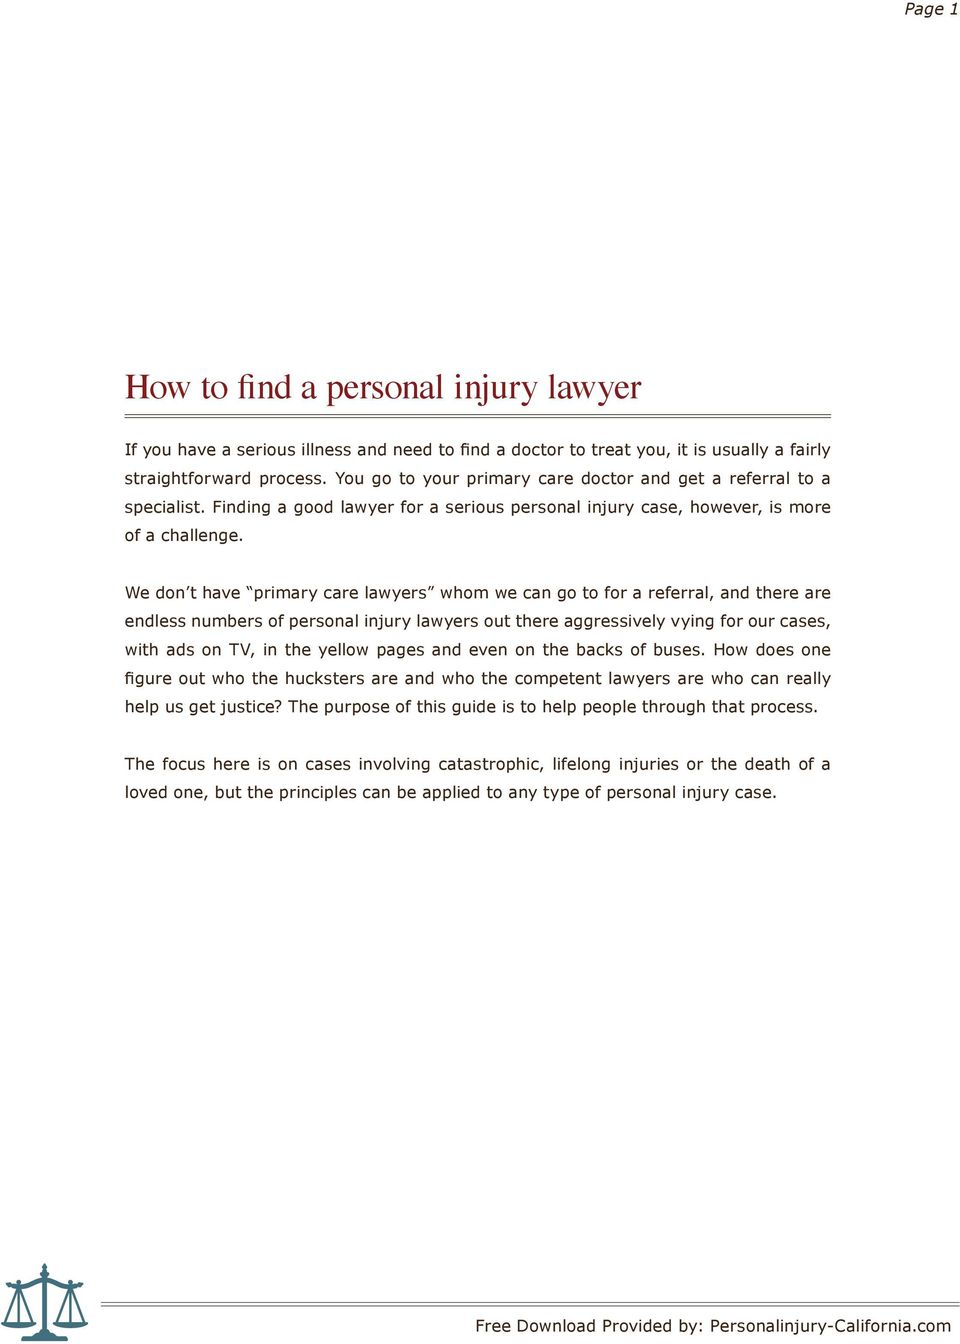 We don t have primary care lawyers whom we can go to for a referral, and there are endless numbers of personal injury lawyers out there aggressively vying for our cases, with ads on TV, in the yellow